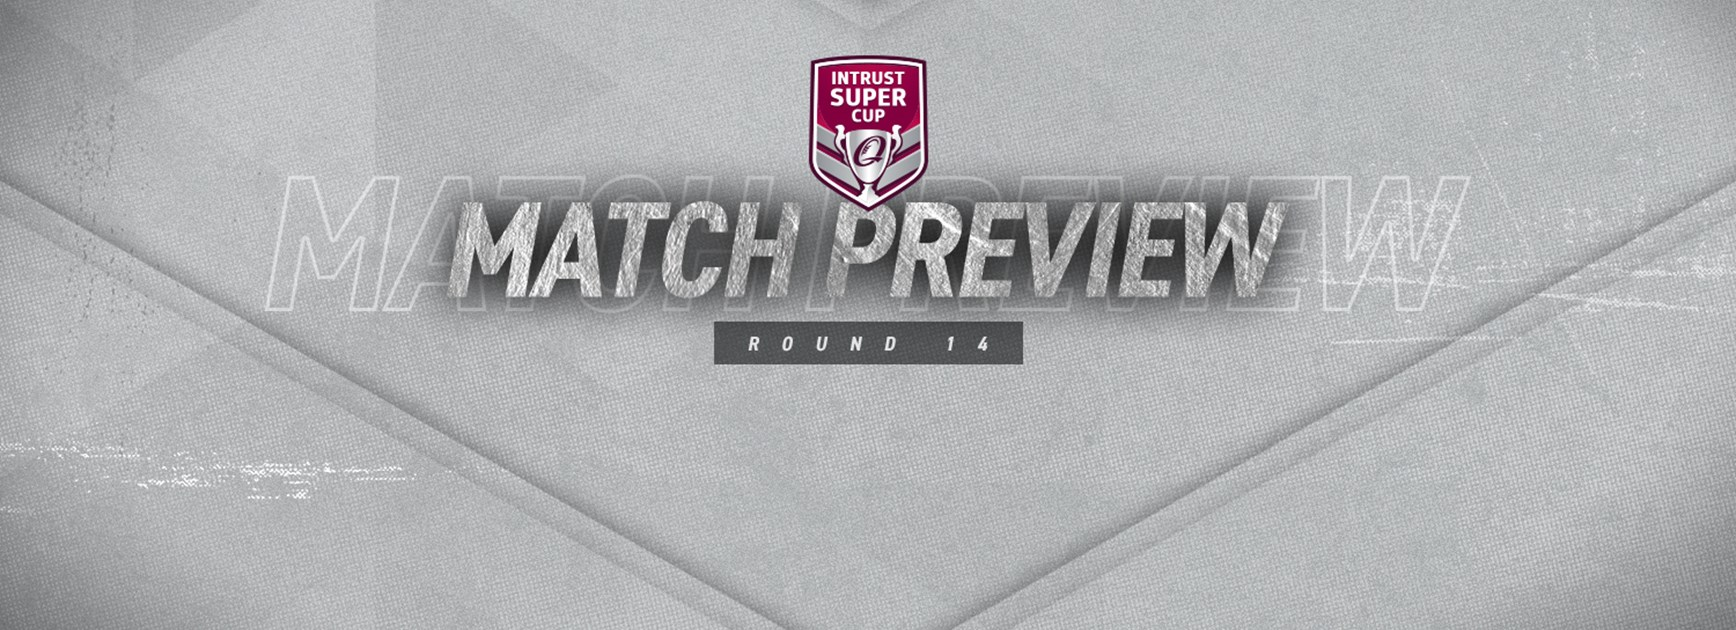 Intrust Super Cup Round 14 preview